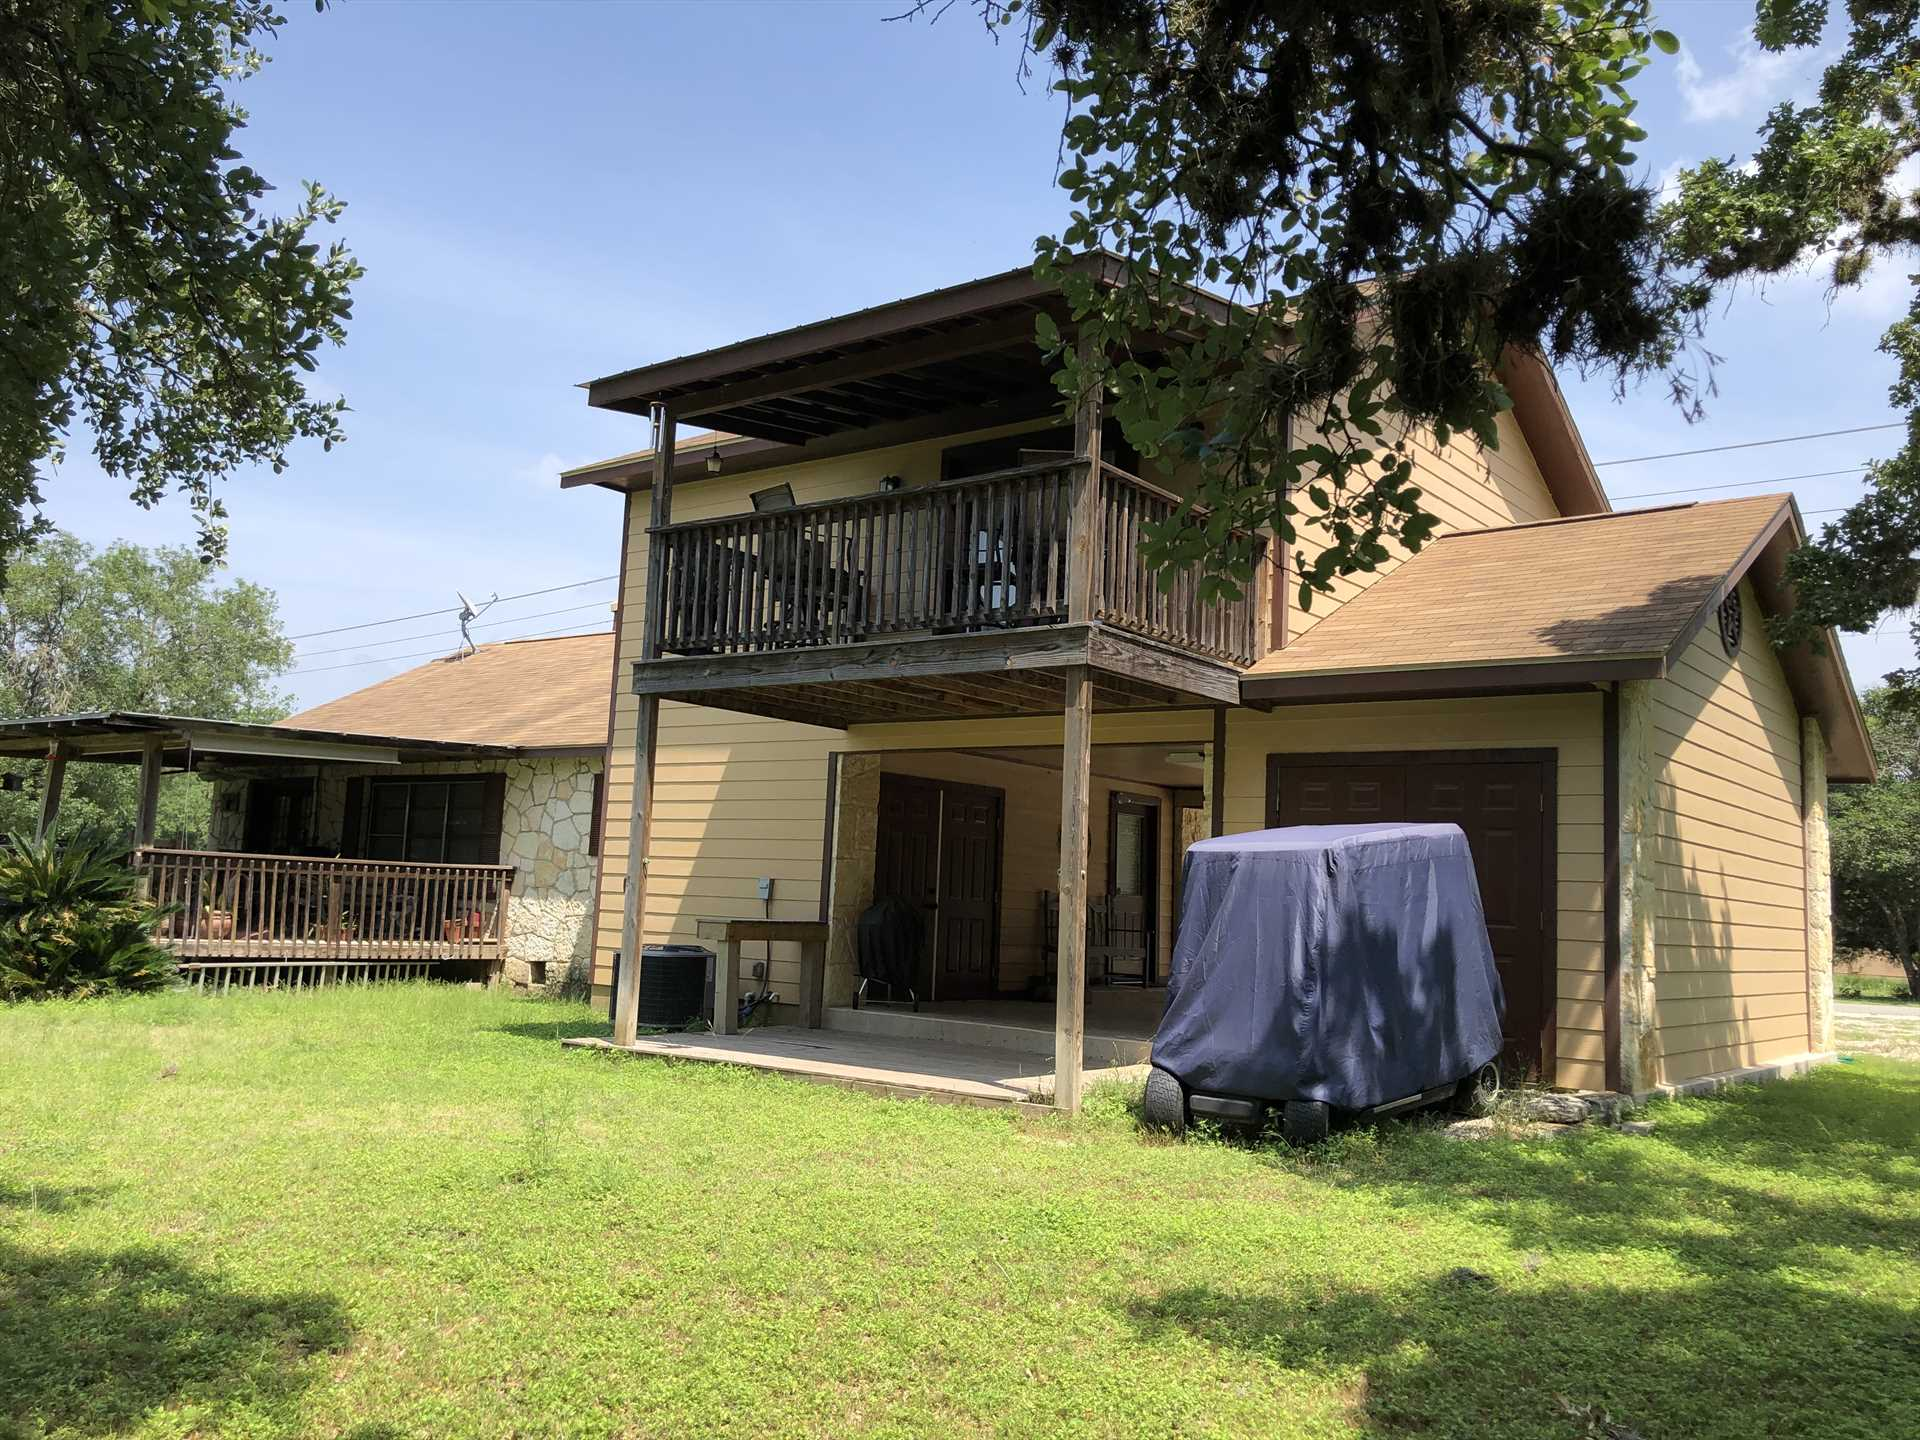 Plenty of shade above and below allows your folks to enjoy the Hill Country breezes out of the sun!